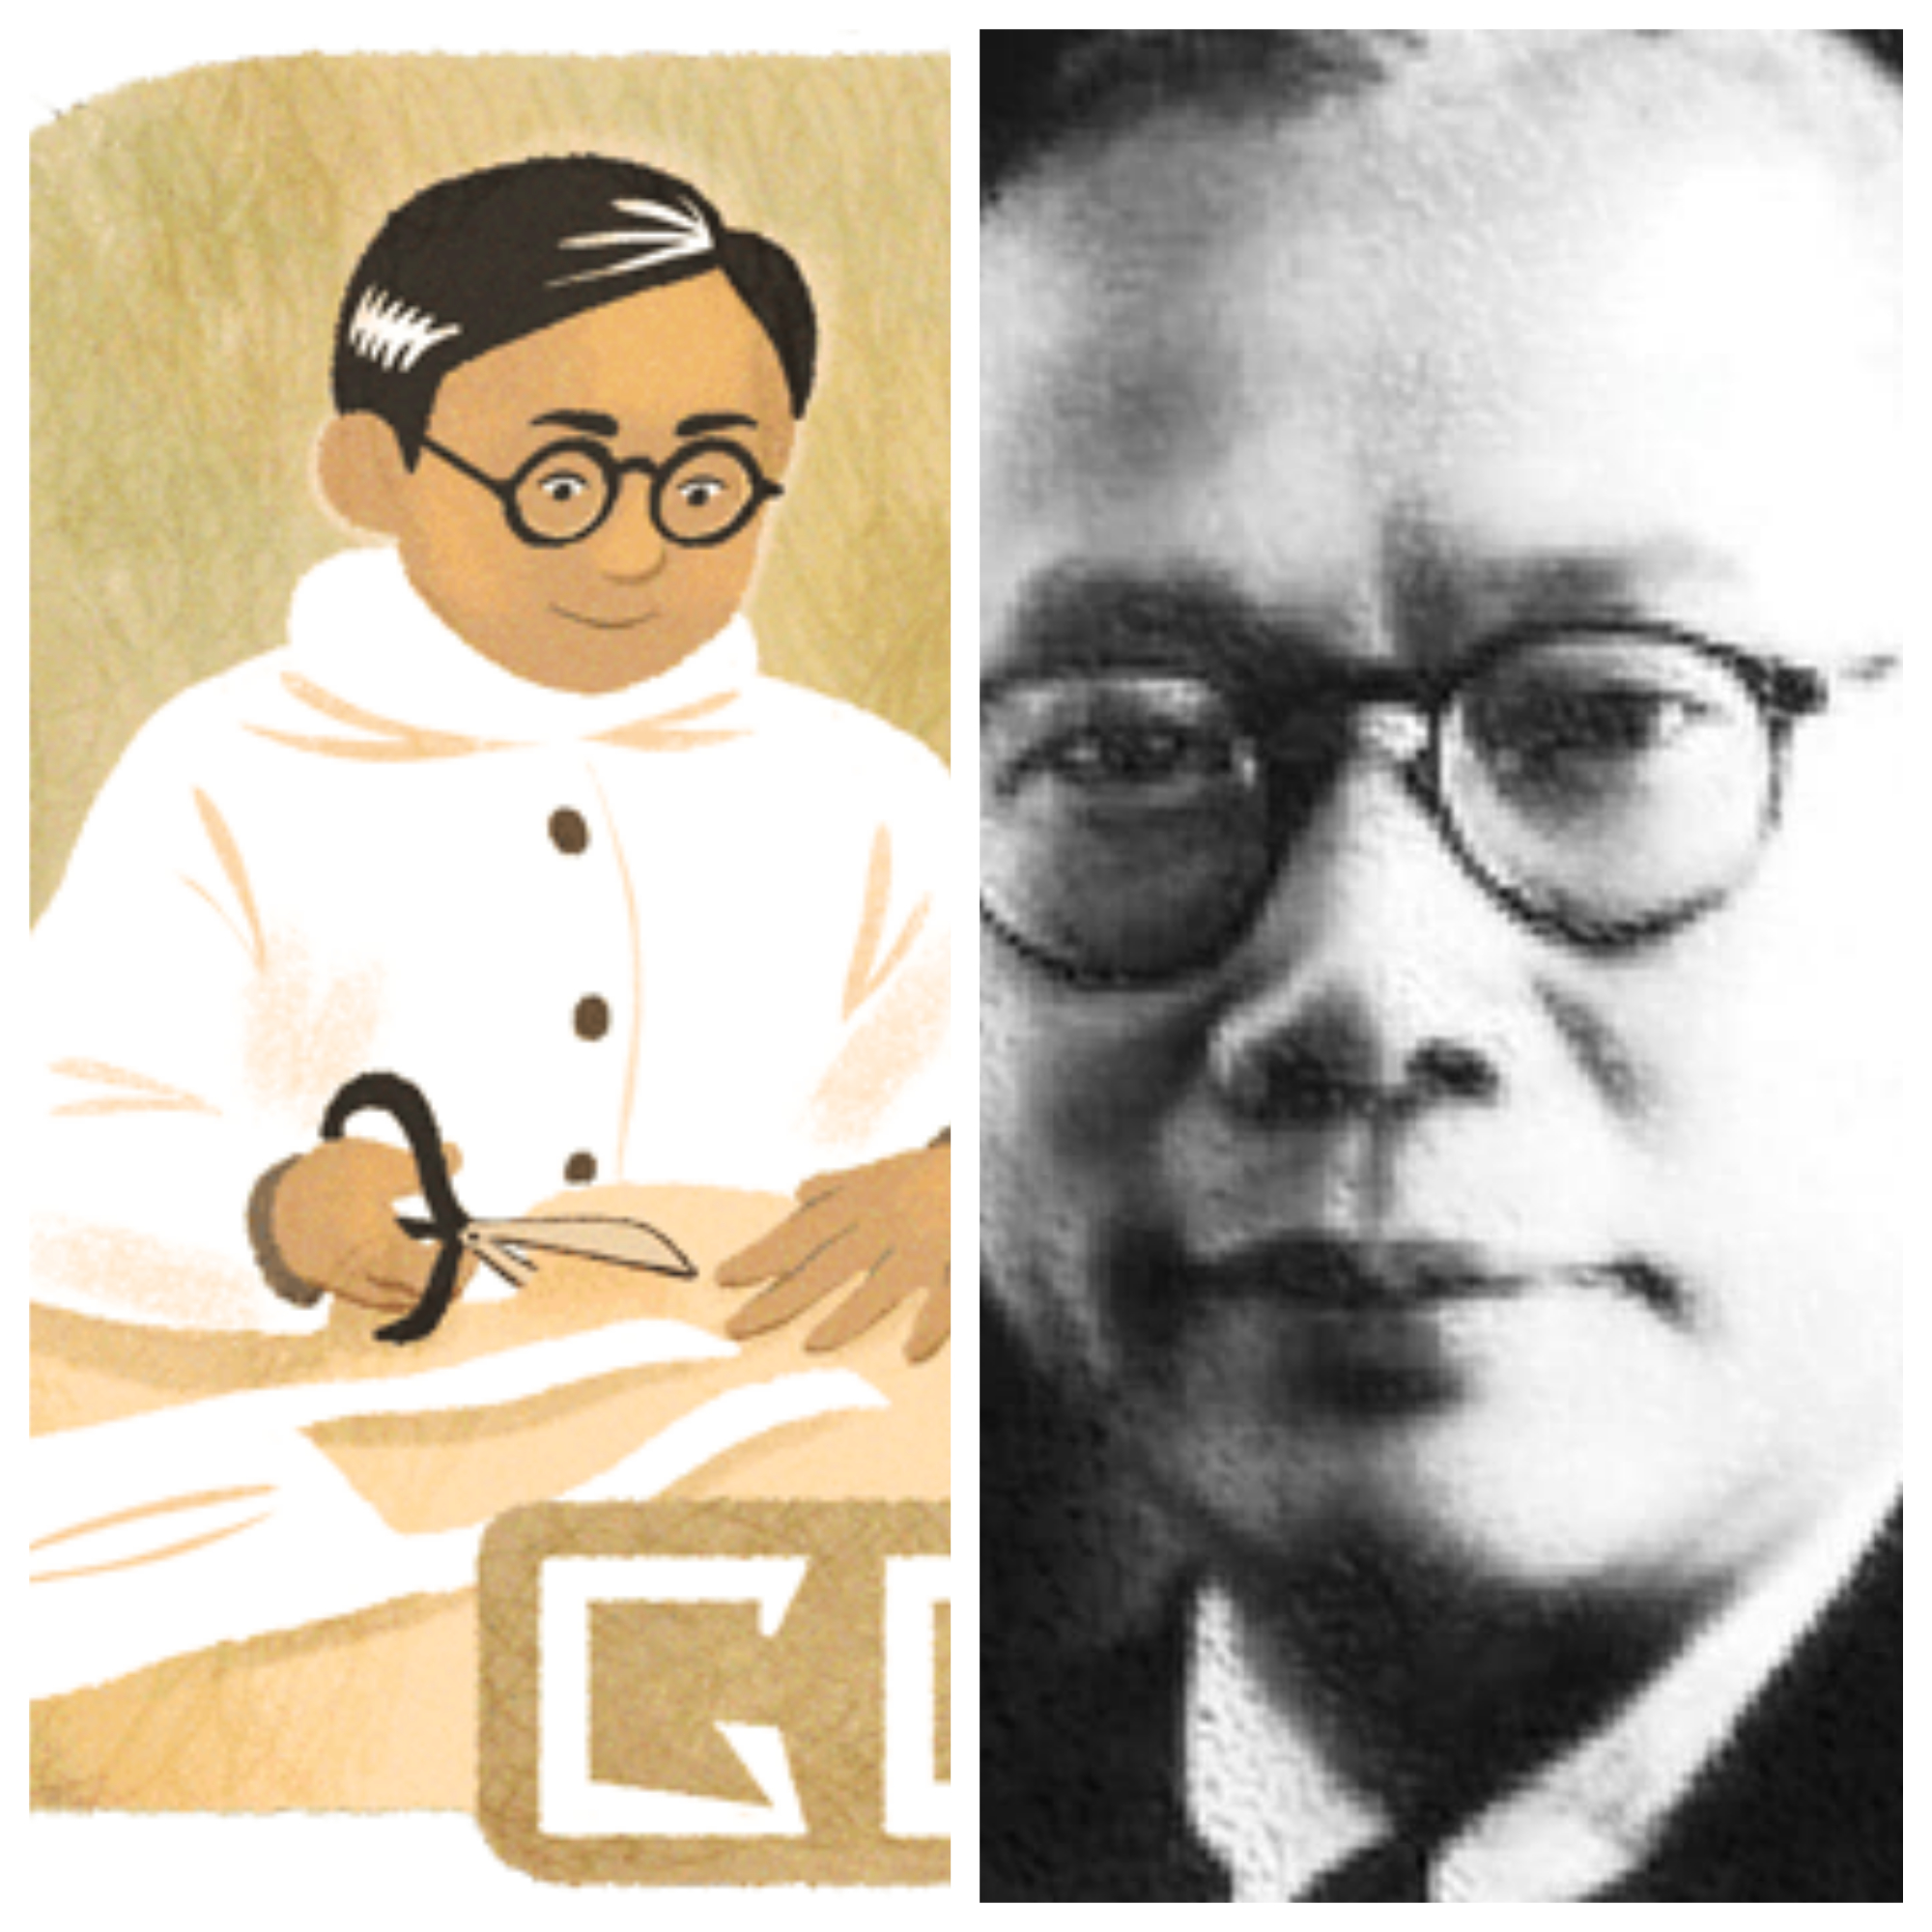 Google Doodle Honors Dr. Wu Lien-teh, Creator of the Surgical Mask